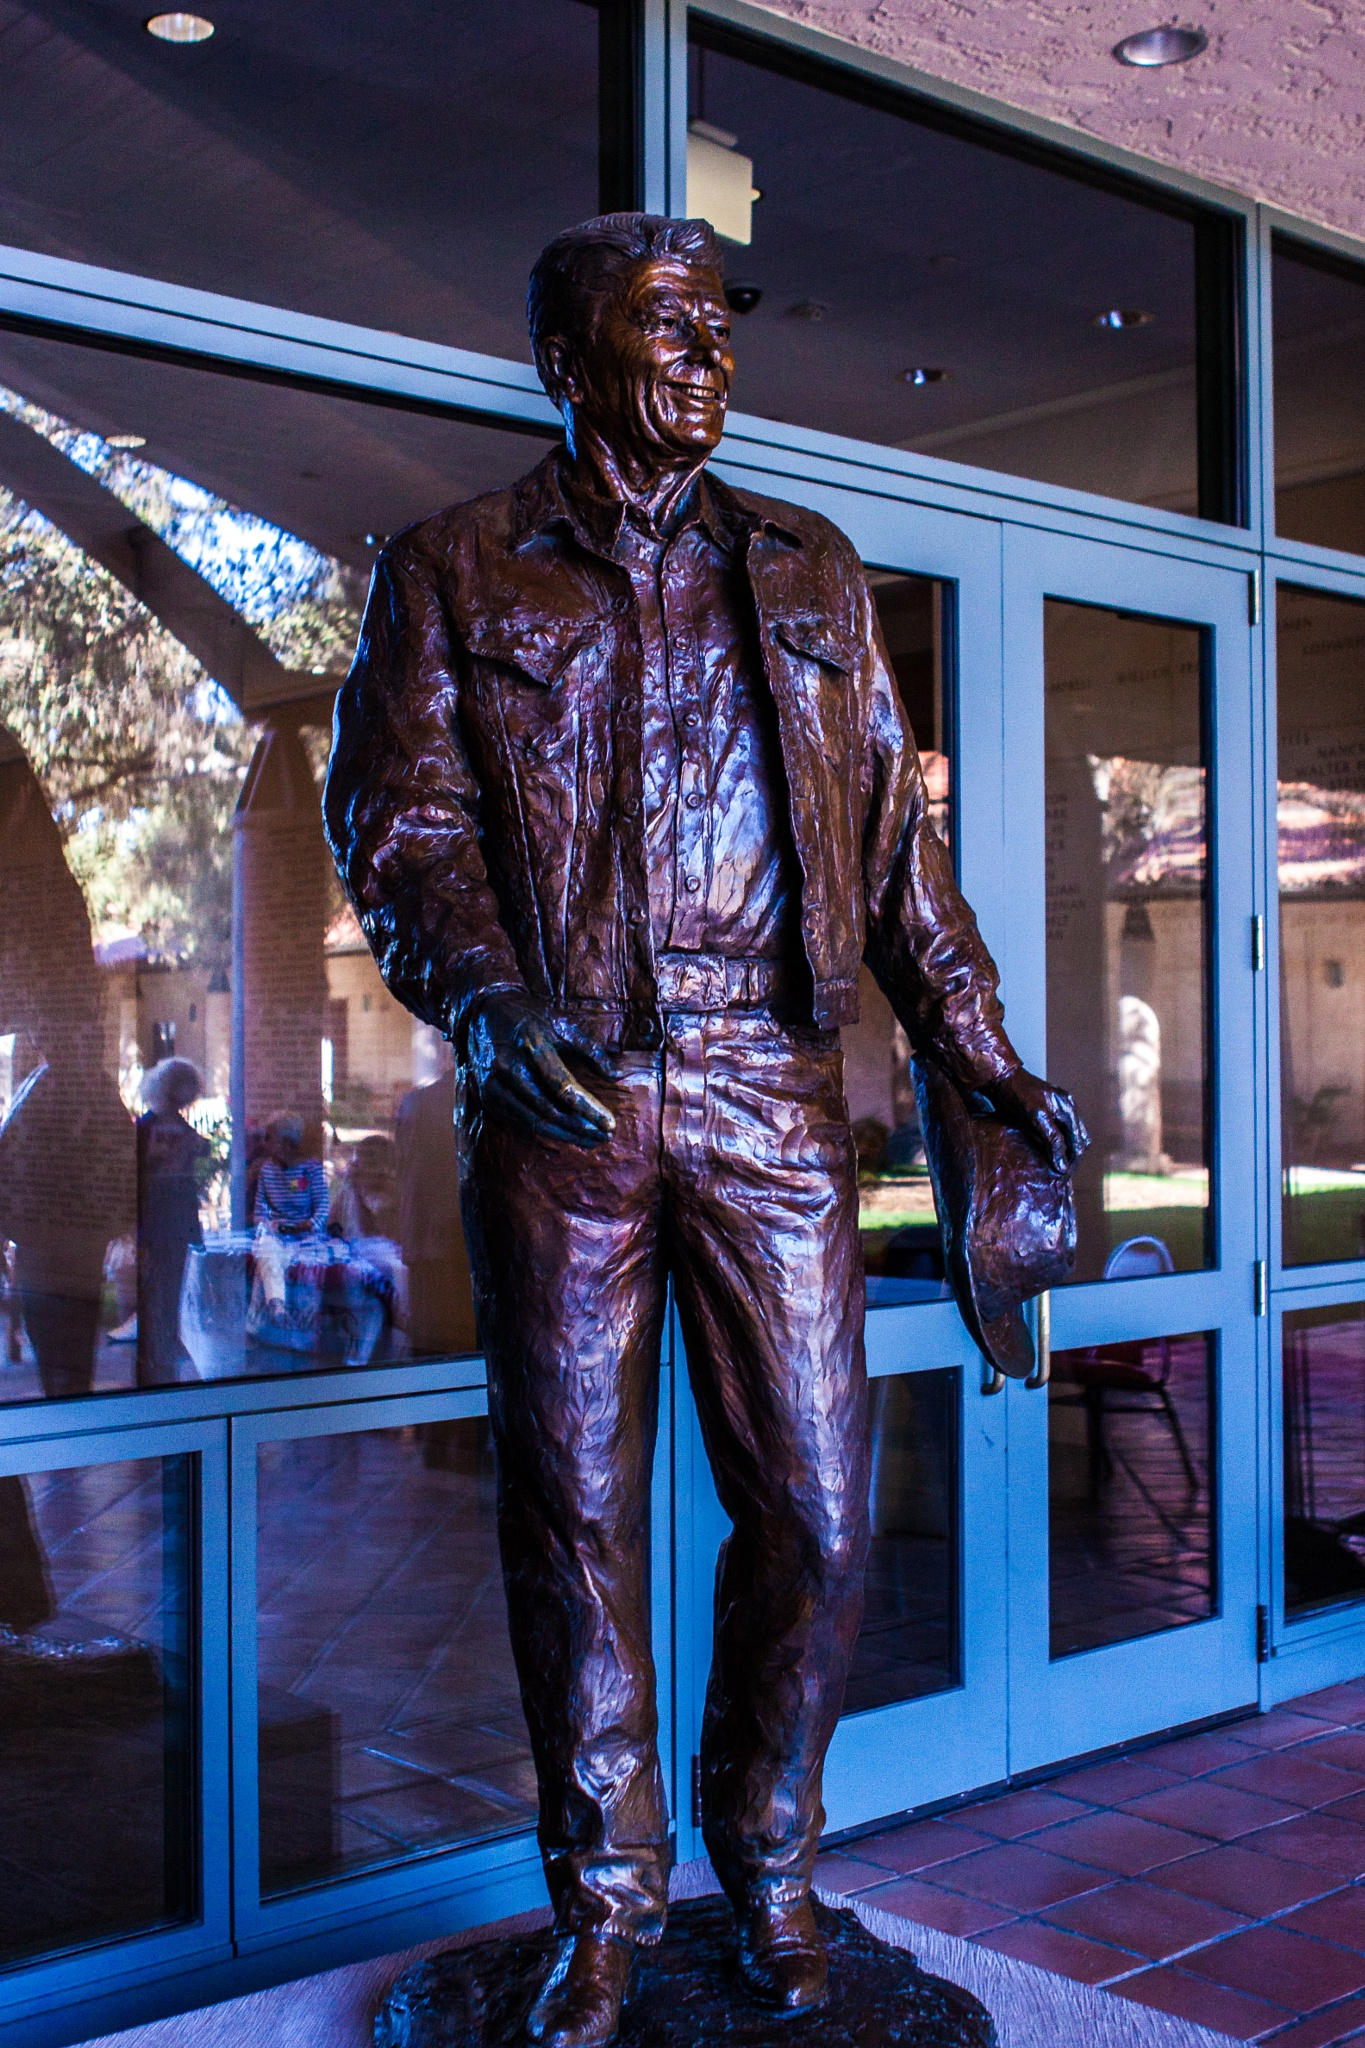 Statue of Pres. Reagan by BillBarnes